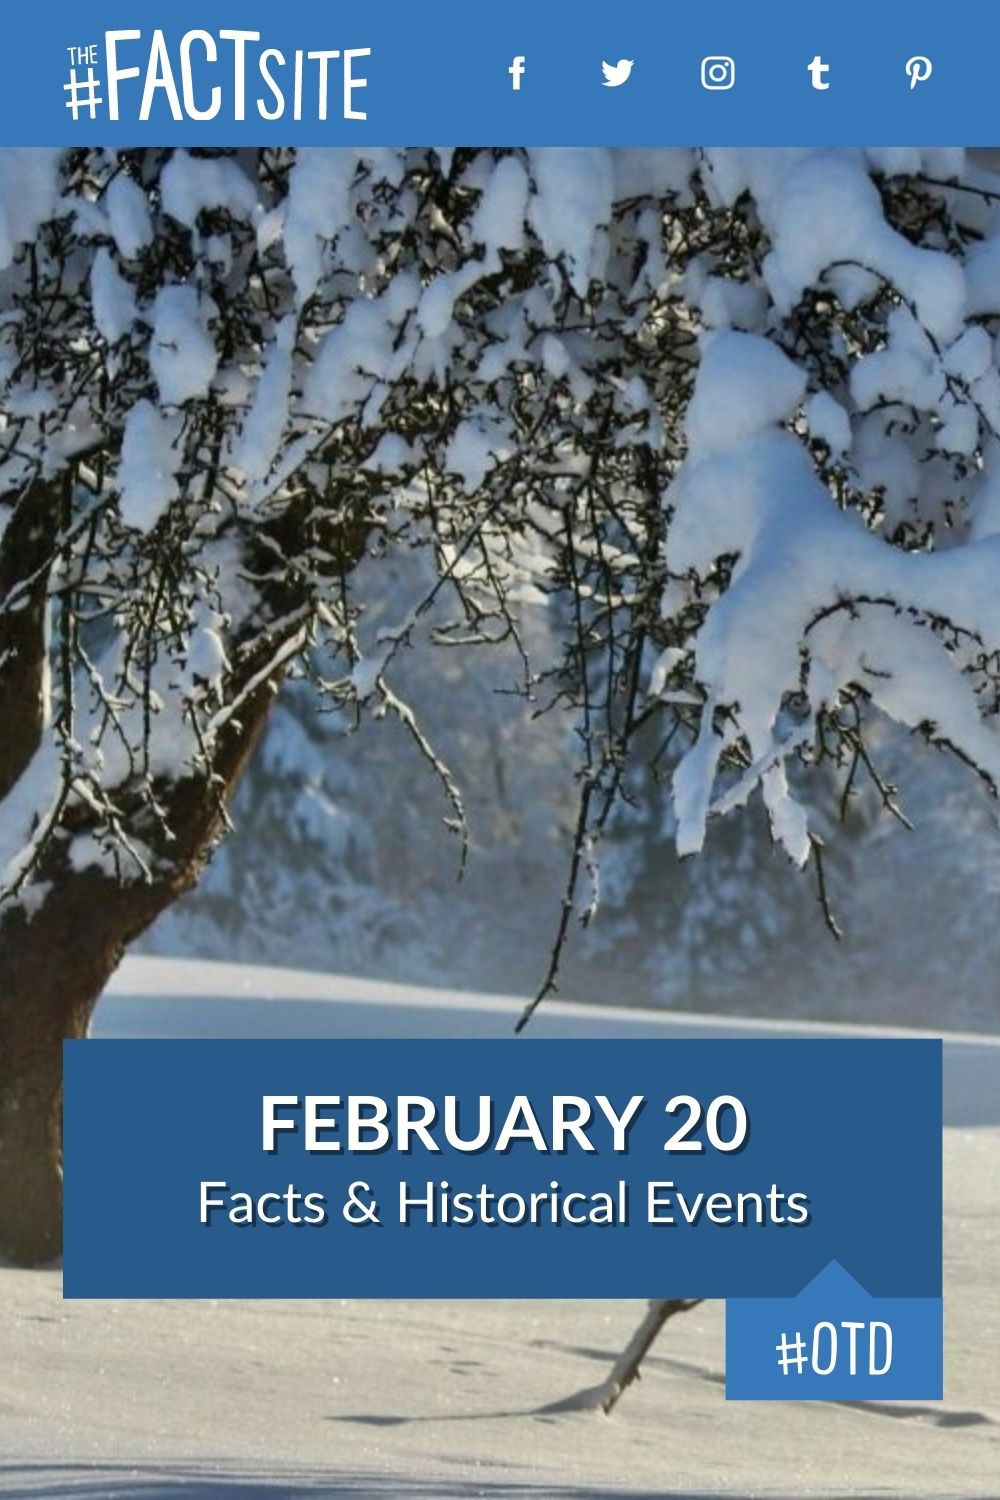 Facts & Historic Events That Happened on February 20